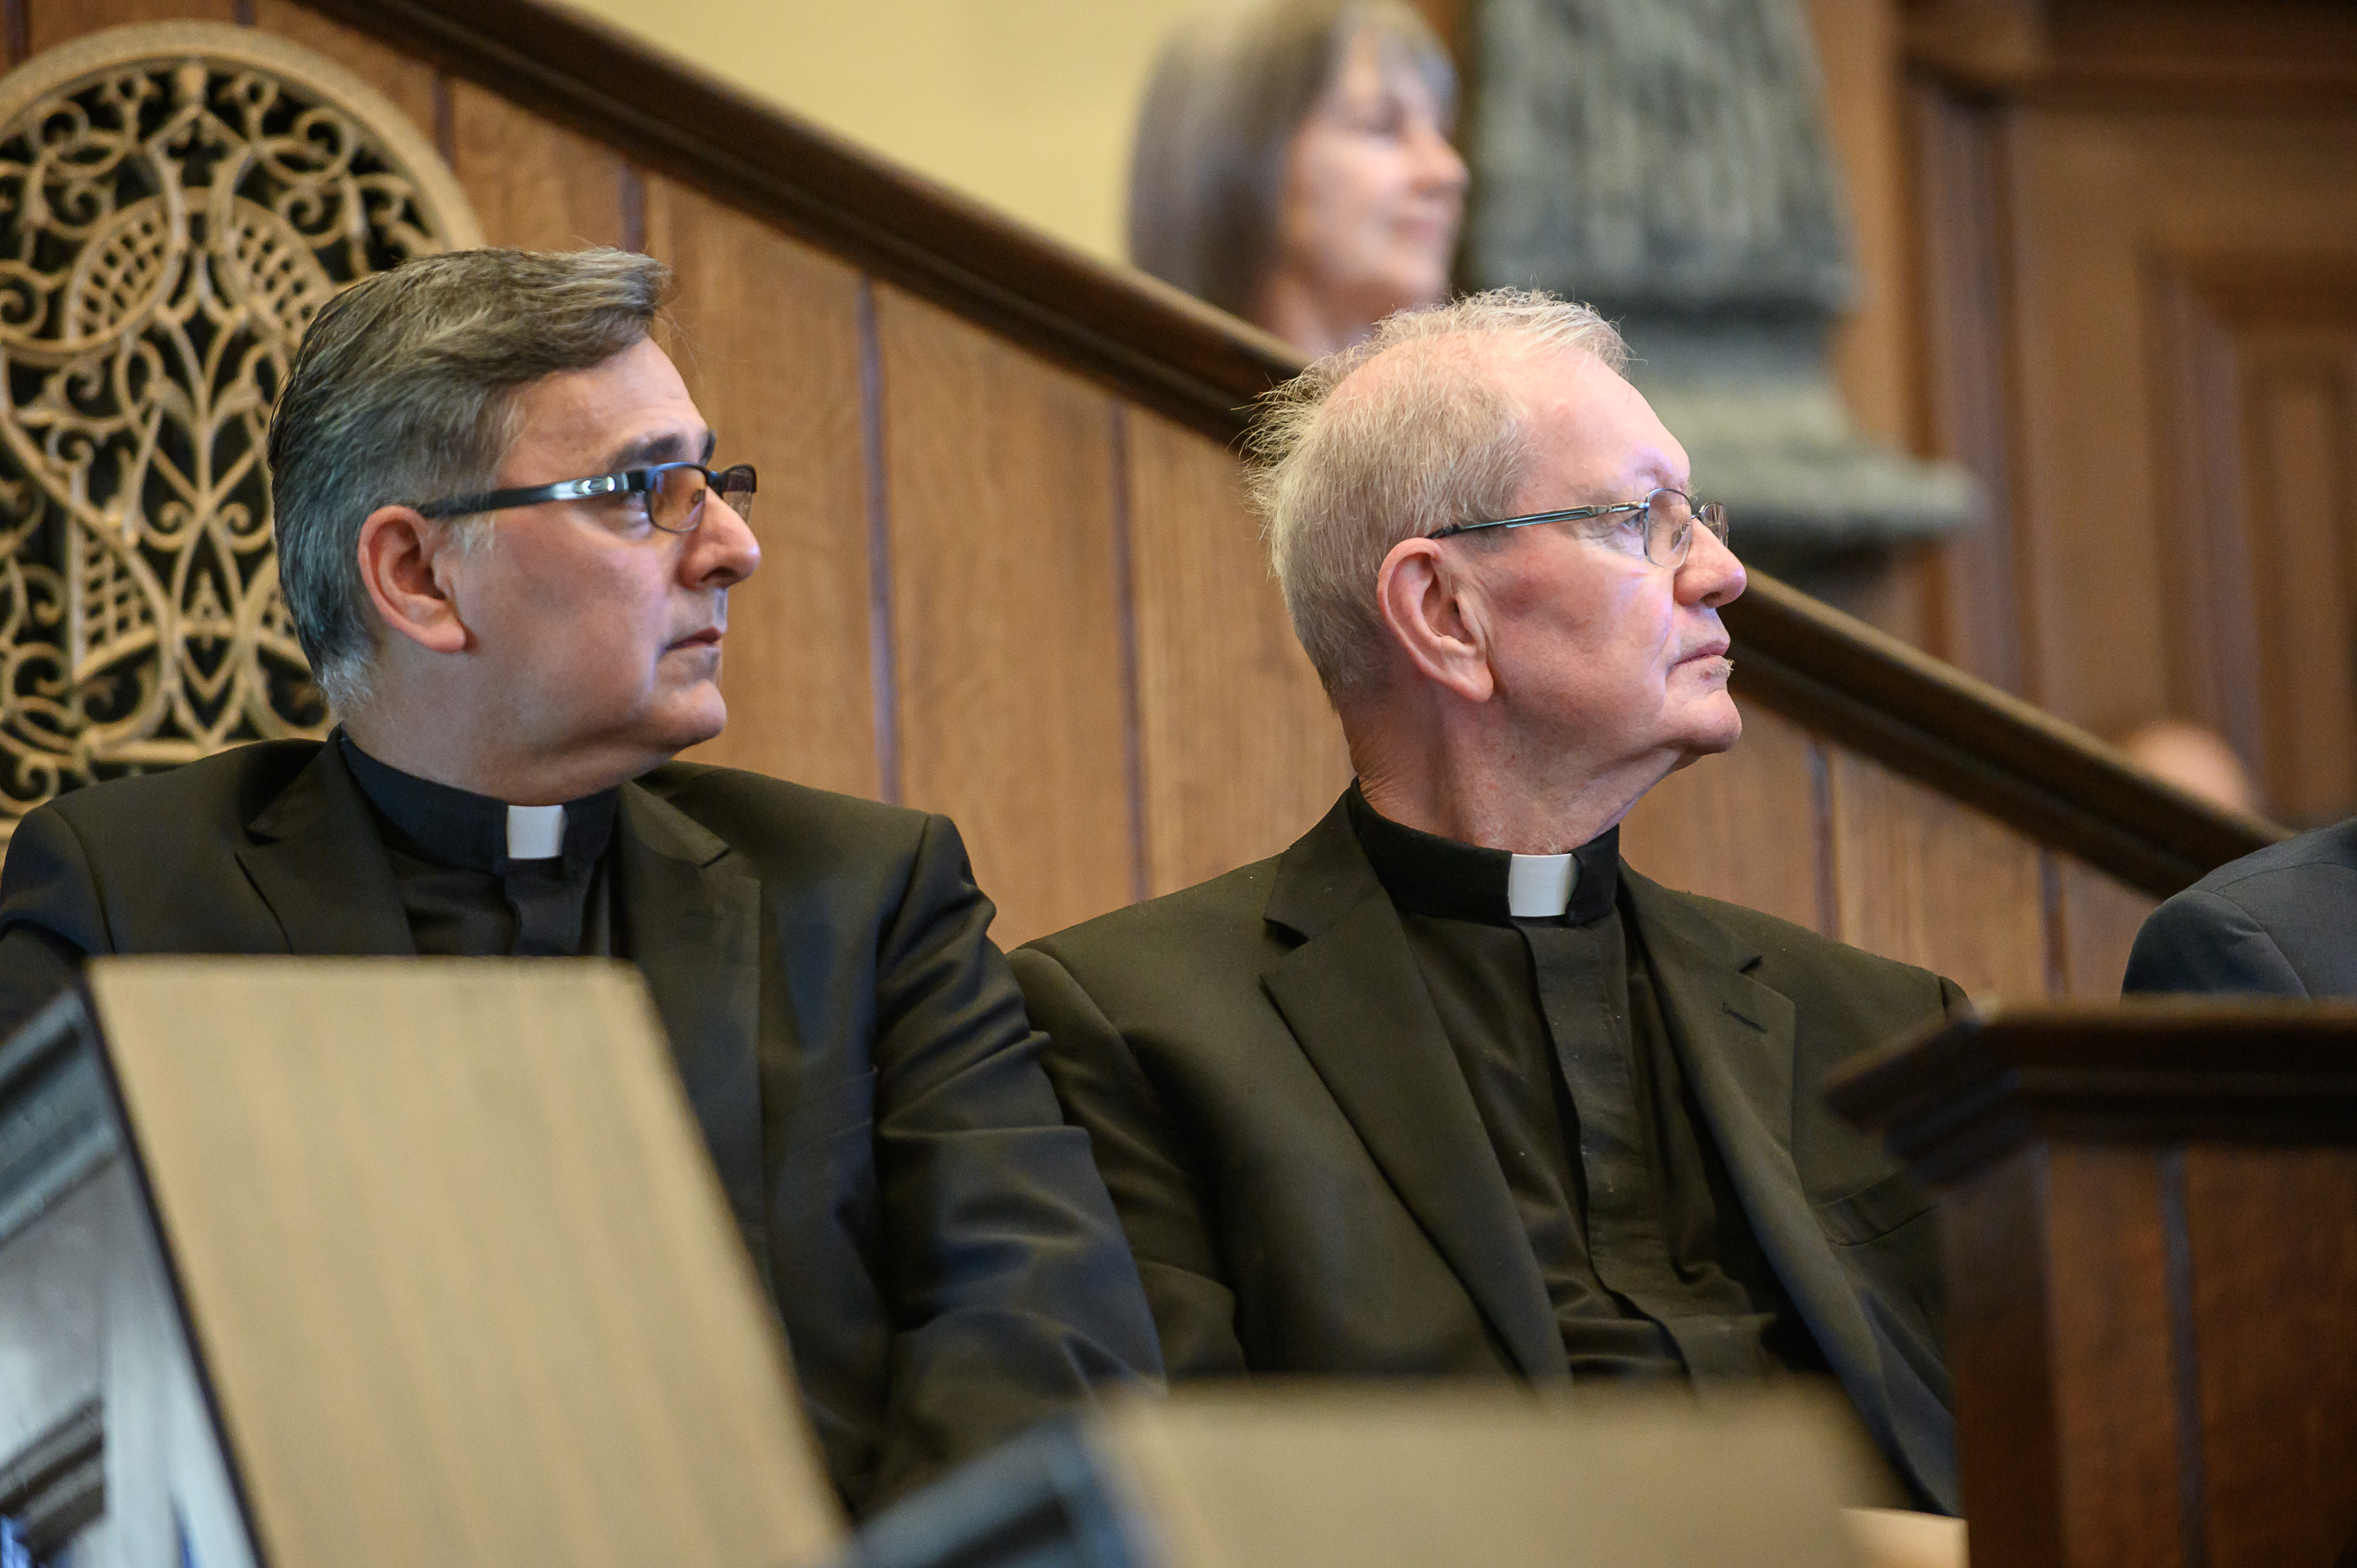 Father Oscar Martin Picos (left), Saint George Catholic Church, and Reverend Monsignor Terence Moore listen at the Historic Interfaith Tribute at the St. George Tabernacle in St. George, Utah on Thursday, May 2, 2019.